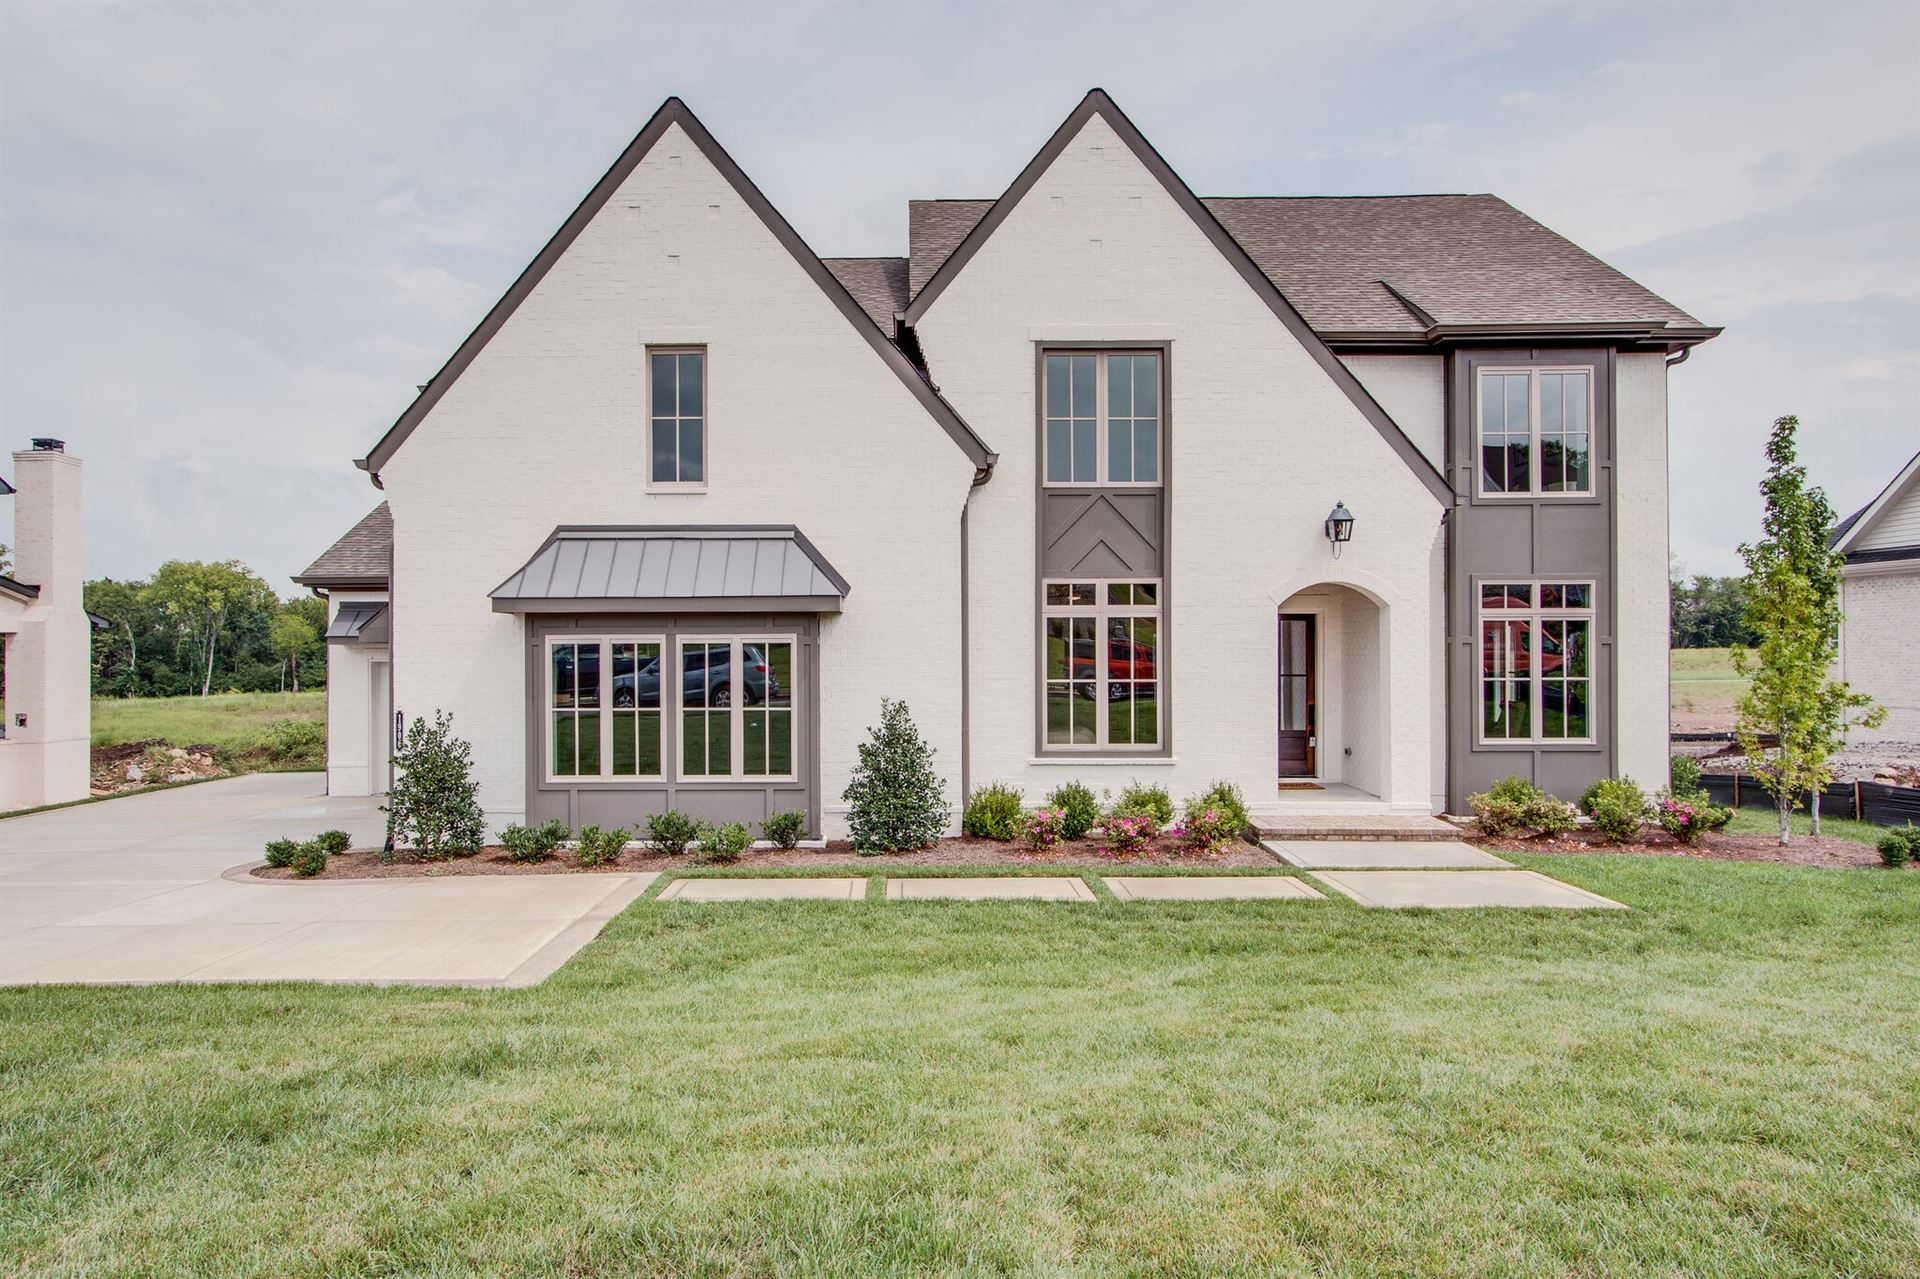 1906 Parade Dr *Lot 29*, Brentwood, TN 37027 - MLS#: 2113249